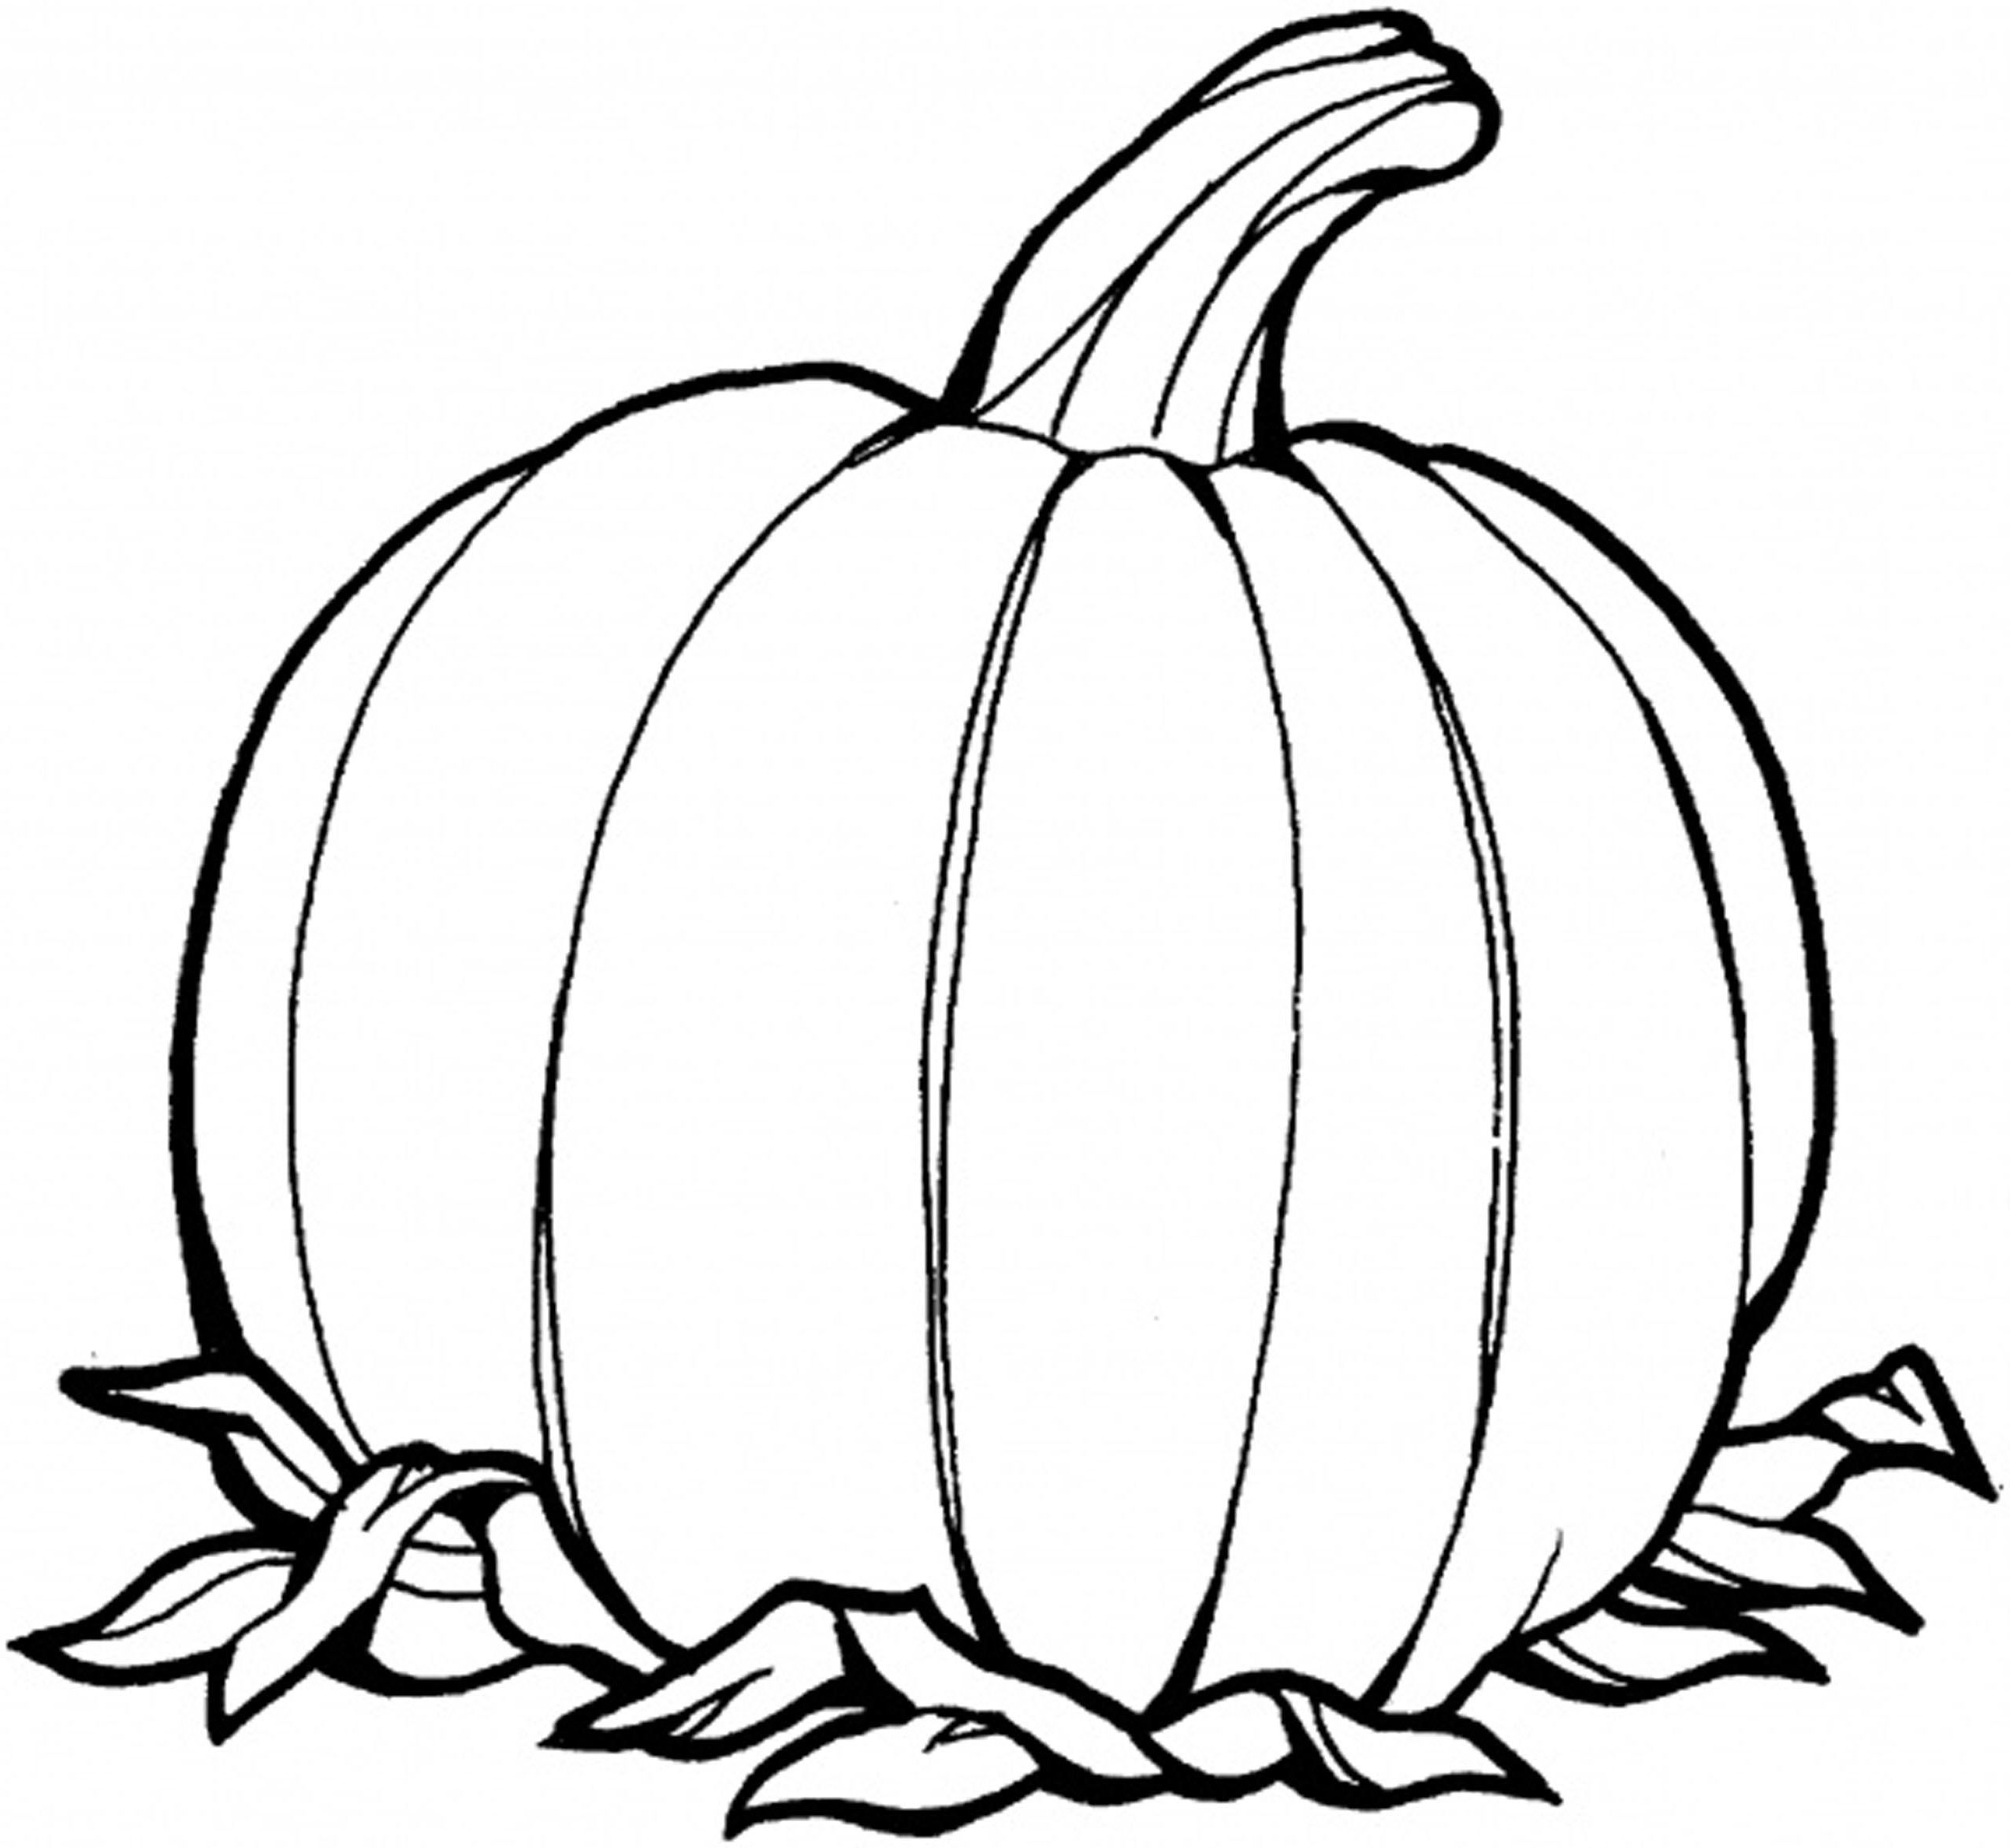 COLORING PAGE PUMPKINS Coloring Home